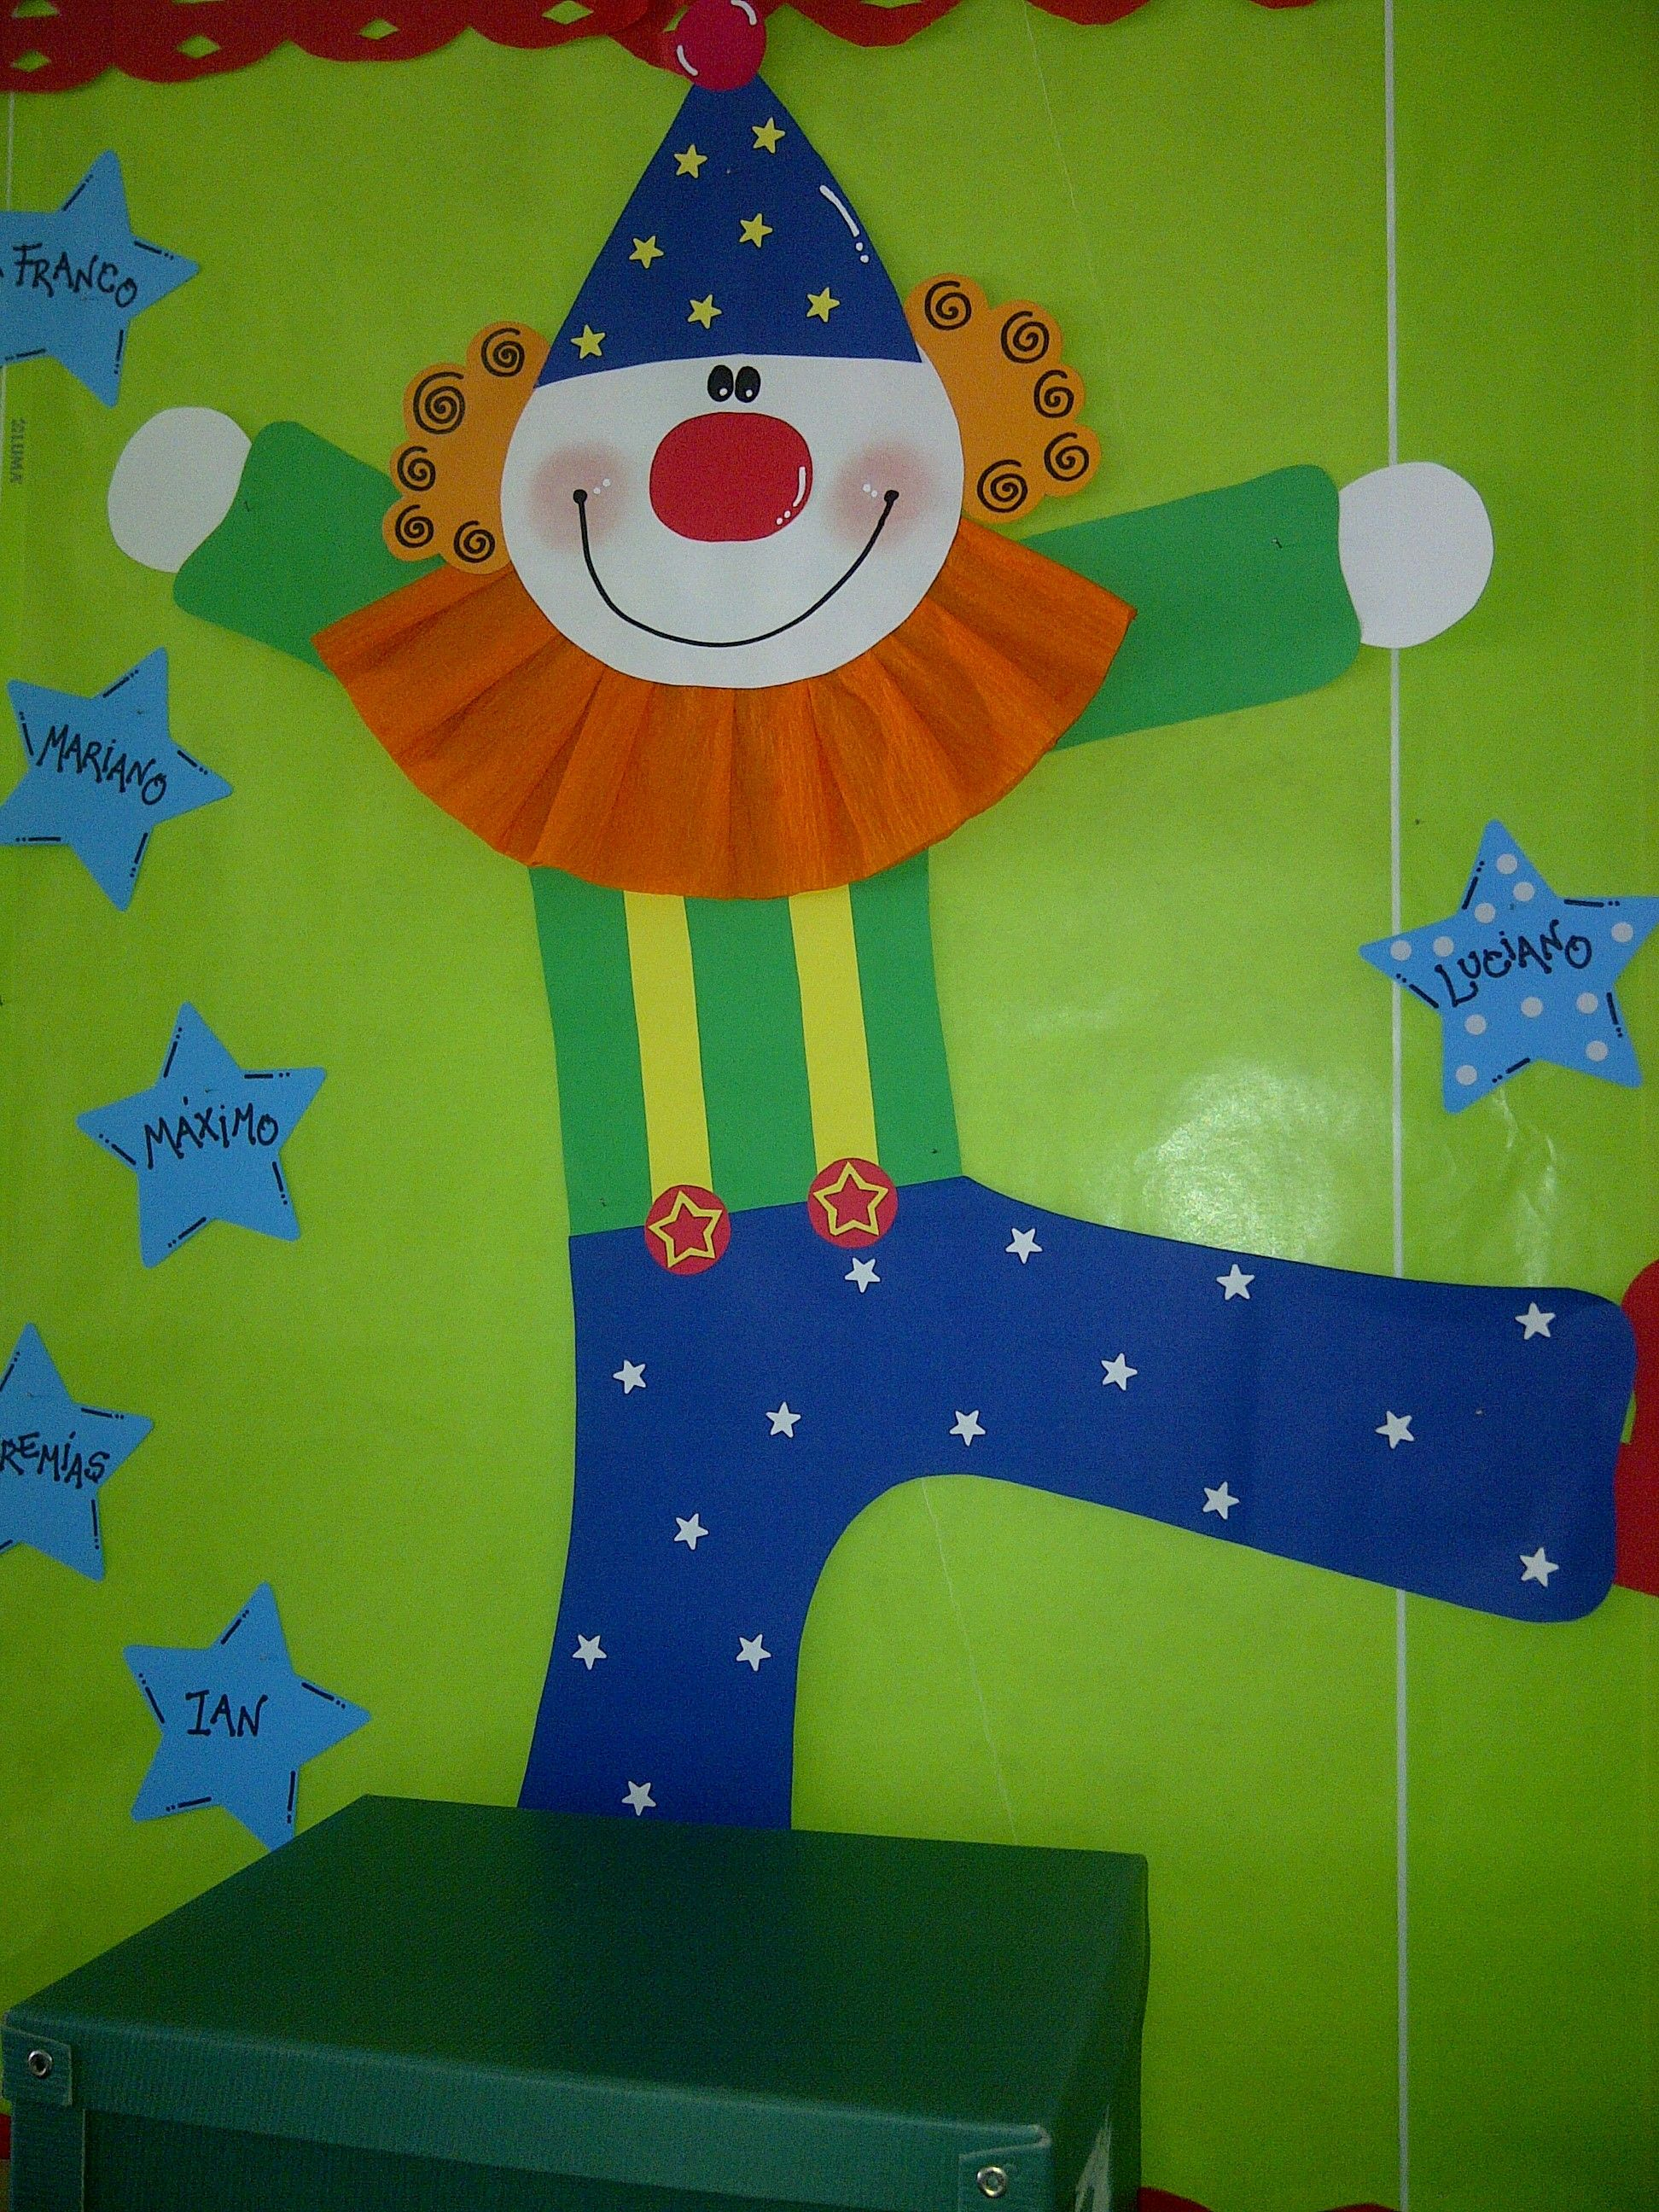 free clown craft idea for kids | Crafts and Worksheets for Preschool ...